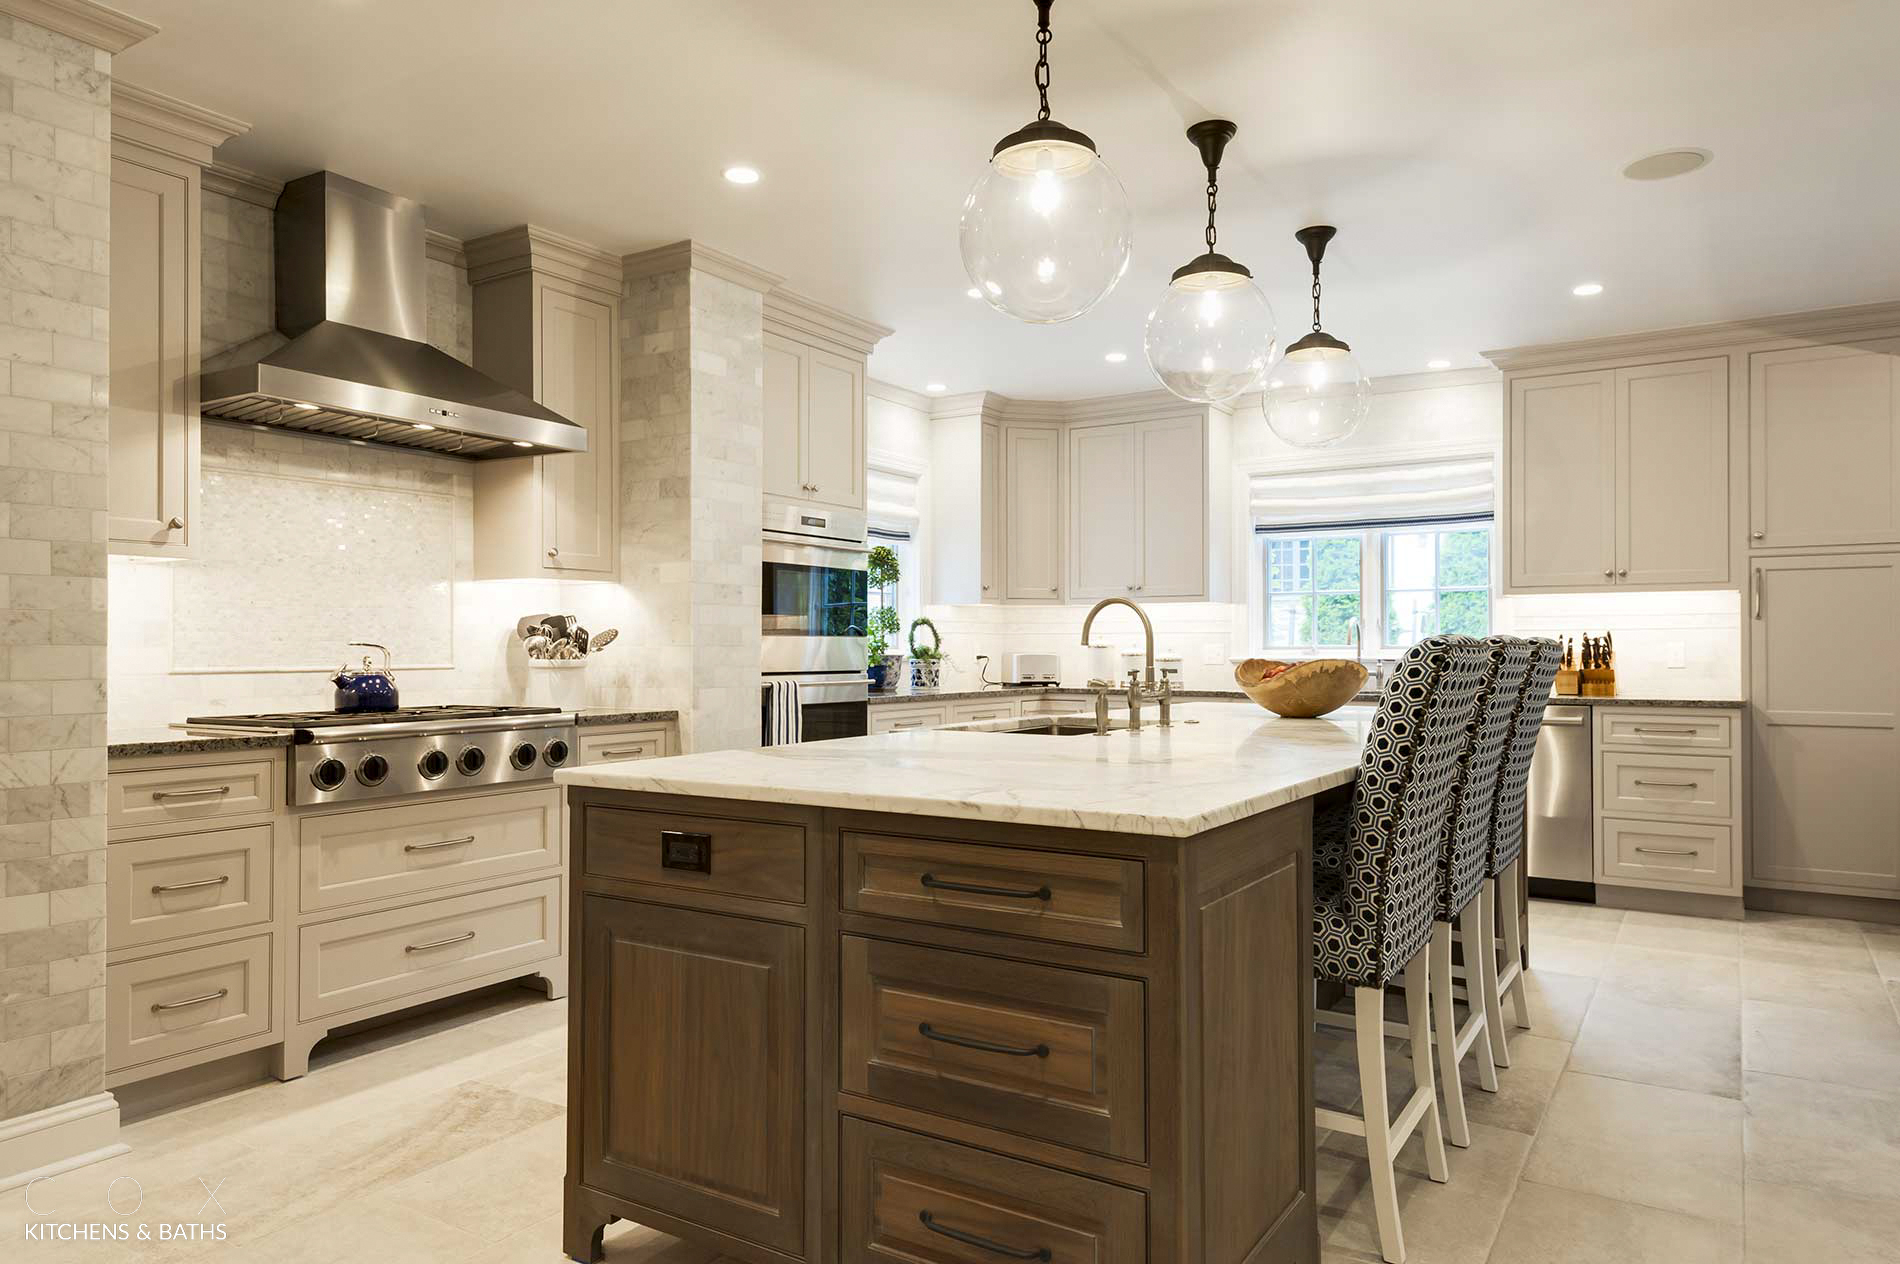 Kitchen Bathroom Design and Remodeling in Baltimore Cox